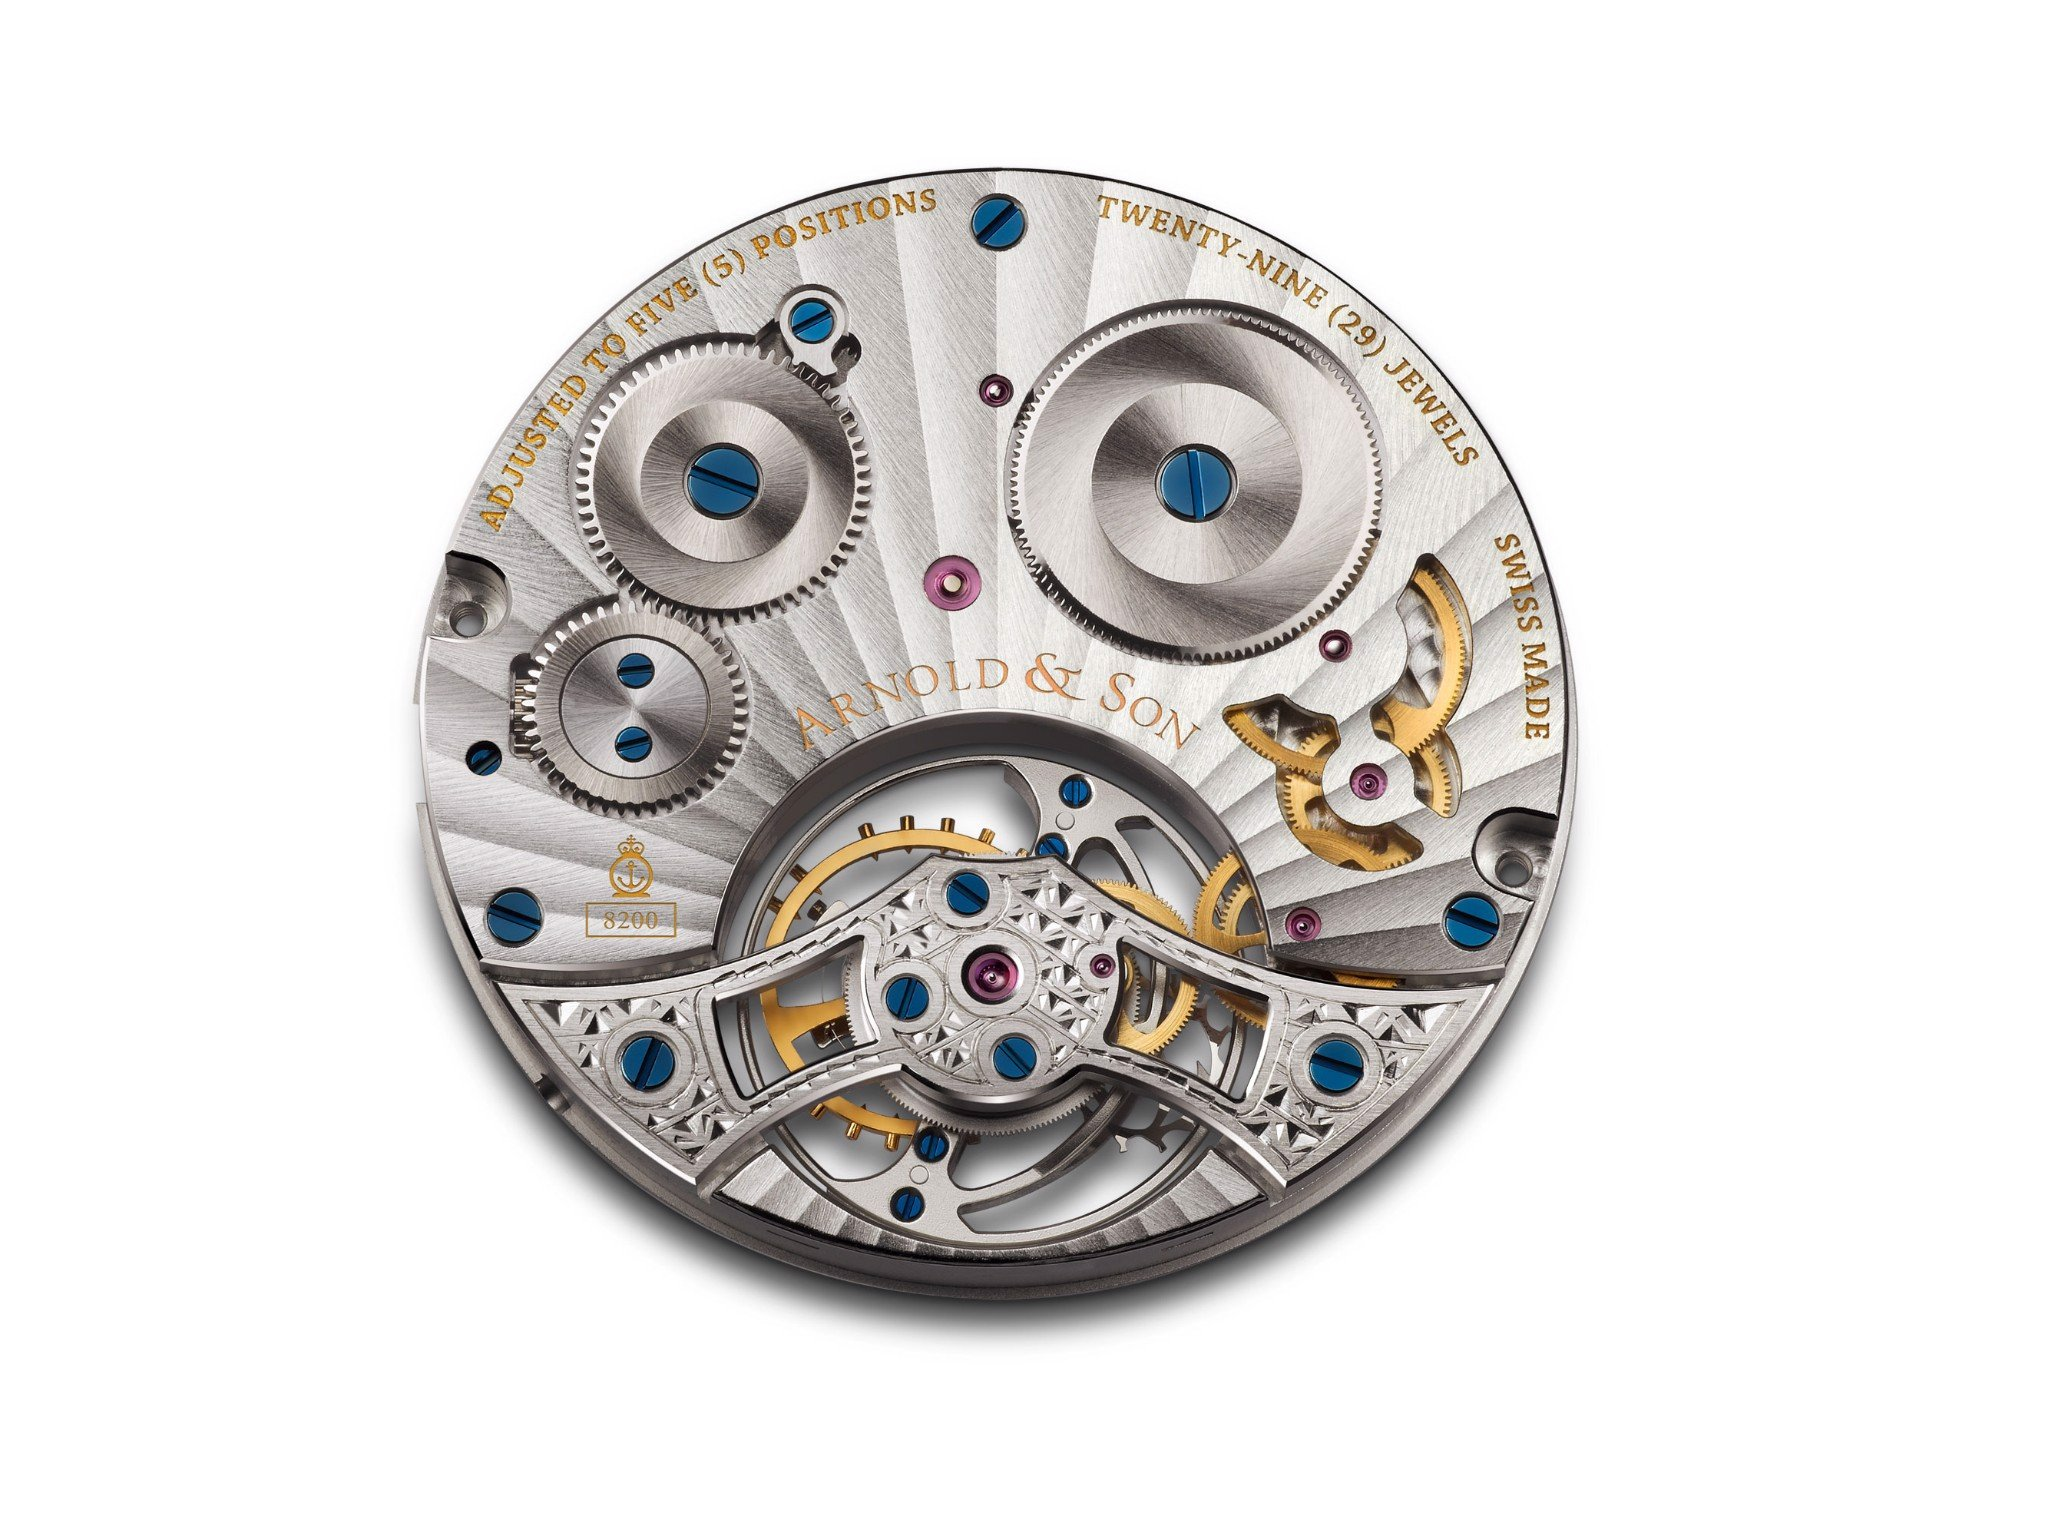 Arnold & Son Instrument UTTE Tourbillon Rose Gold Silver Pattern Dial